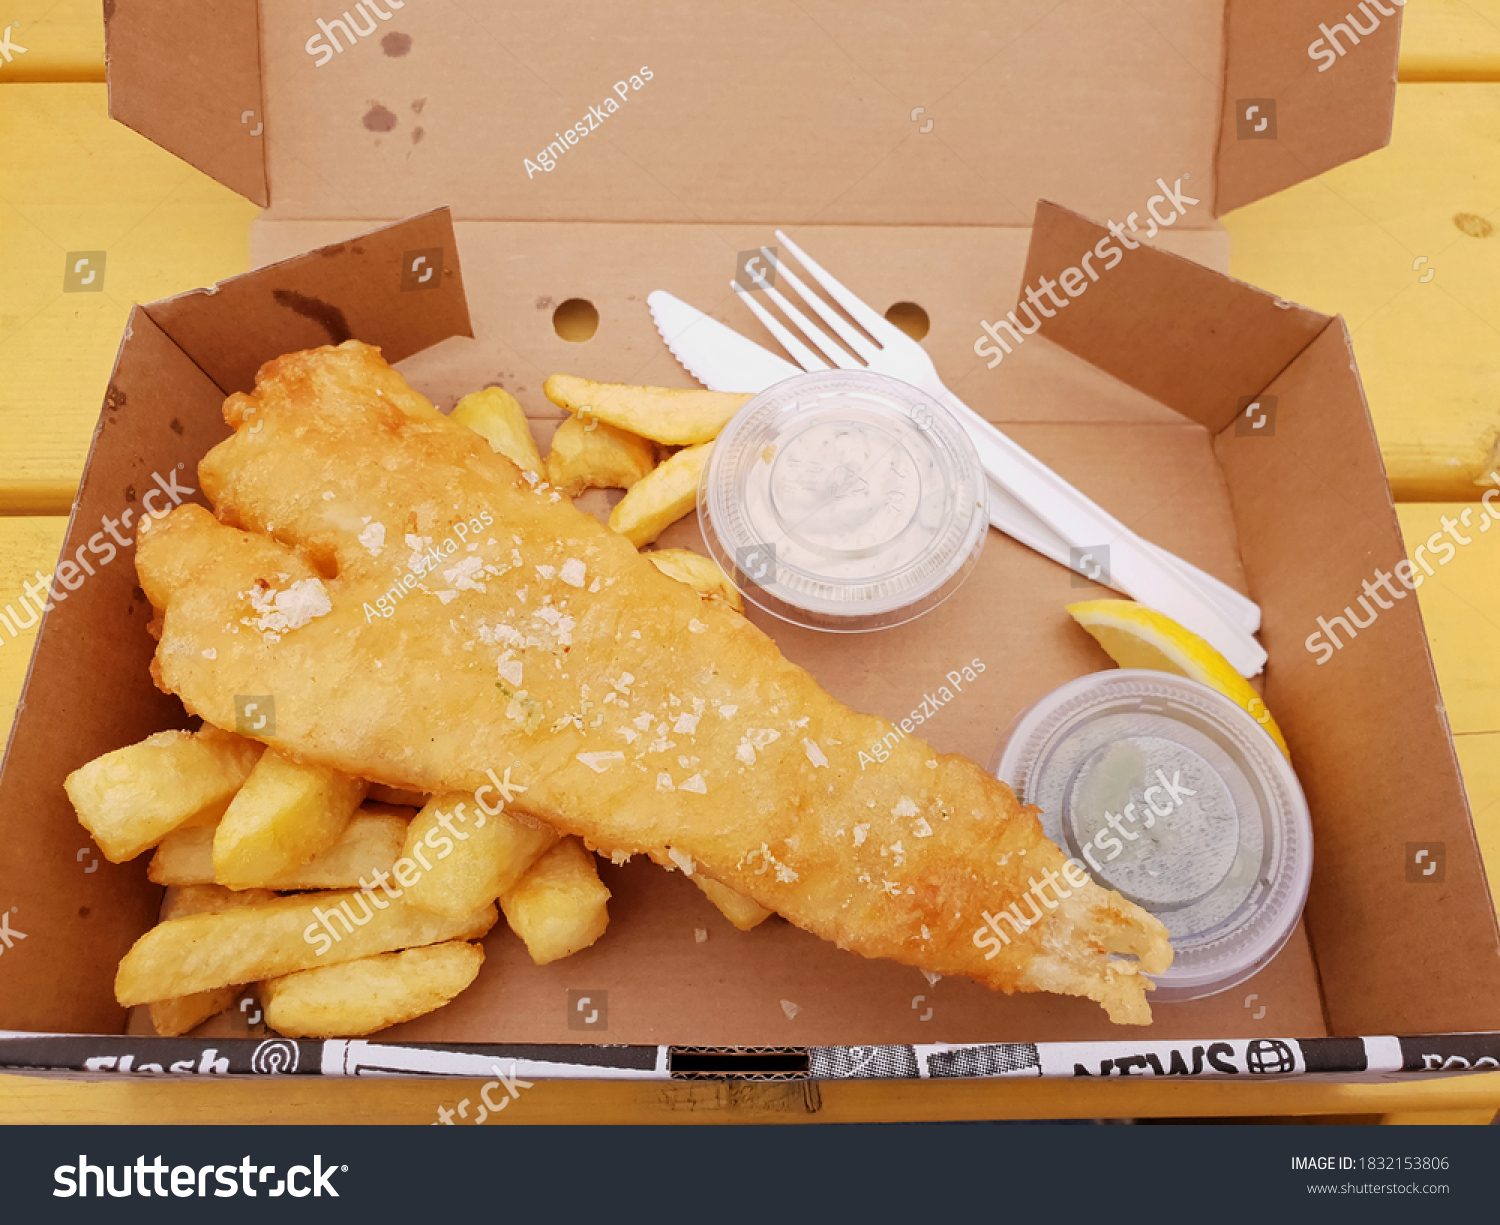 "BRAY, CO. WICKLOW, IRELAND - AUGUST 09, 2020: Close up view of ""Fish and Chips"" meal. Takeaway food in cardboard box, with white plastic cutlery on yellow wooden table. Top view."